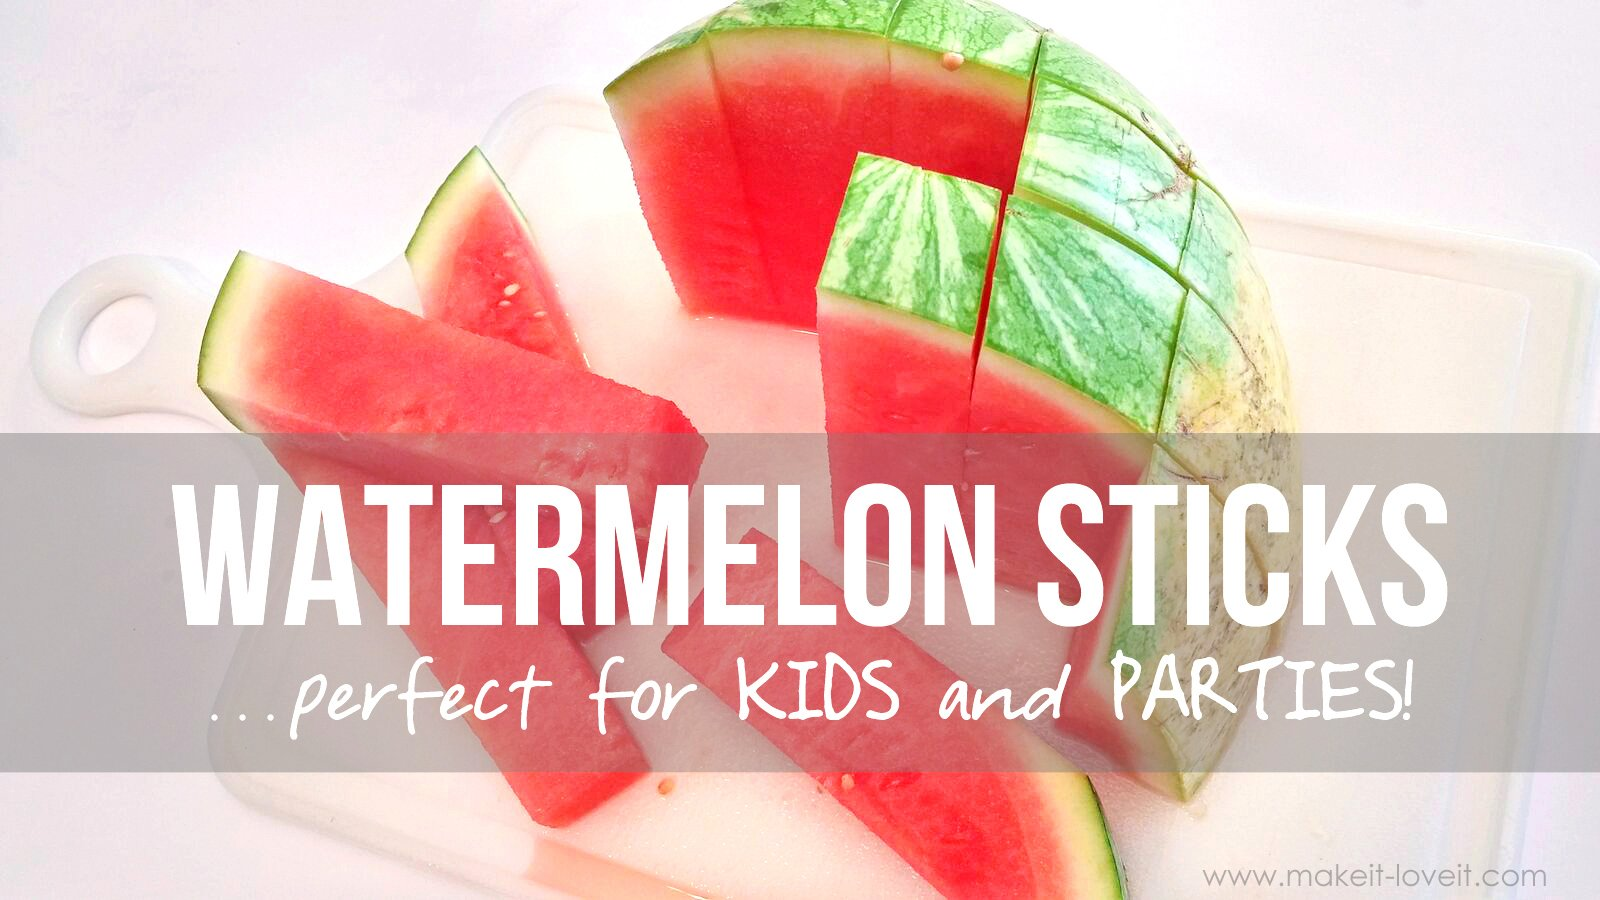 Watermelon sticks…perfect for kids and parties!